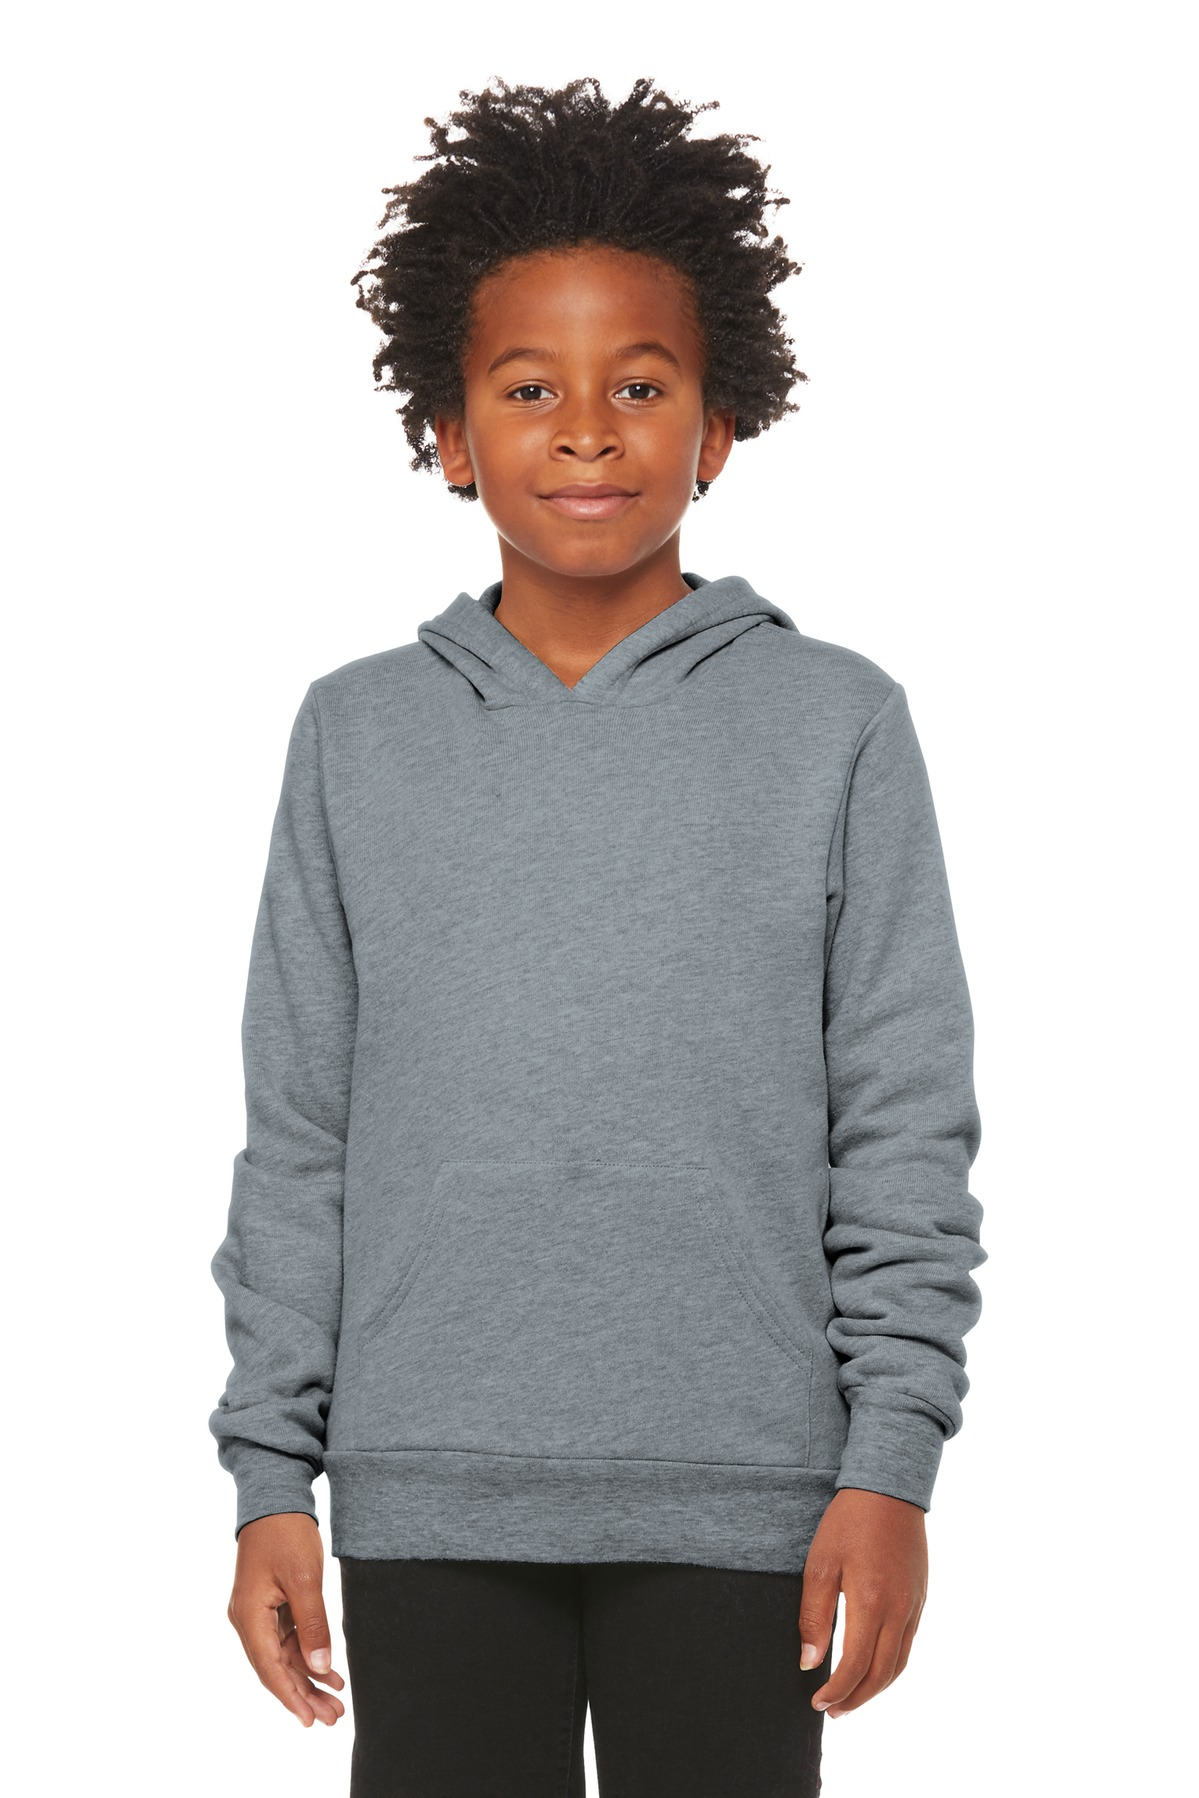 BELLA+CANVAS Youth Sponge Fleece Pullover Hoodie BC3719Y